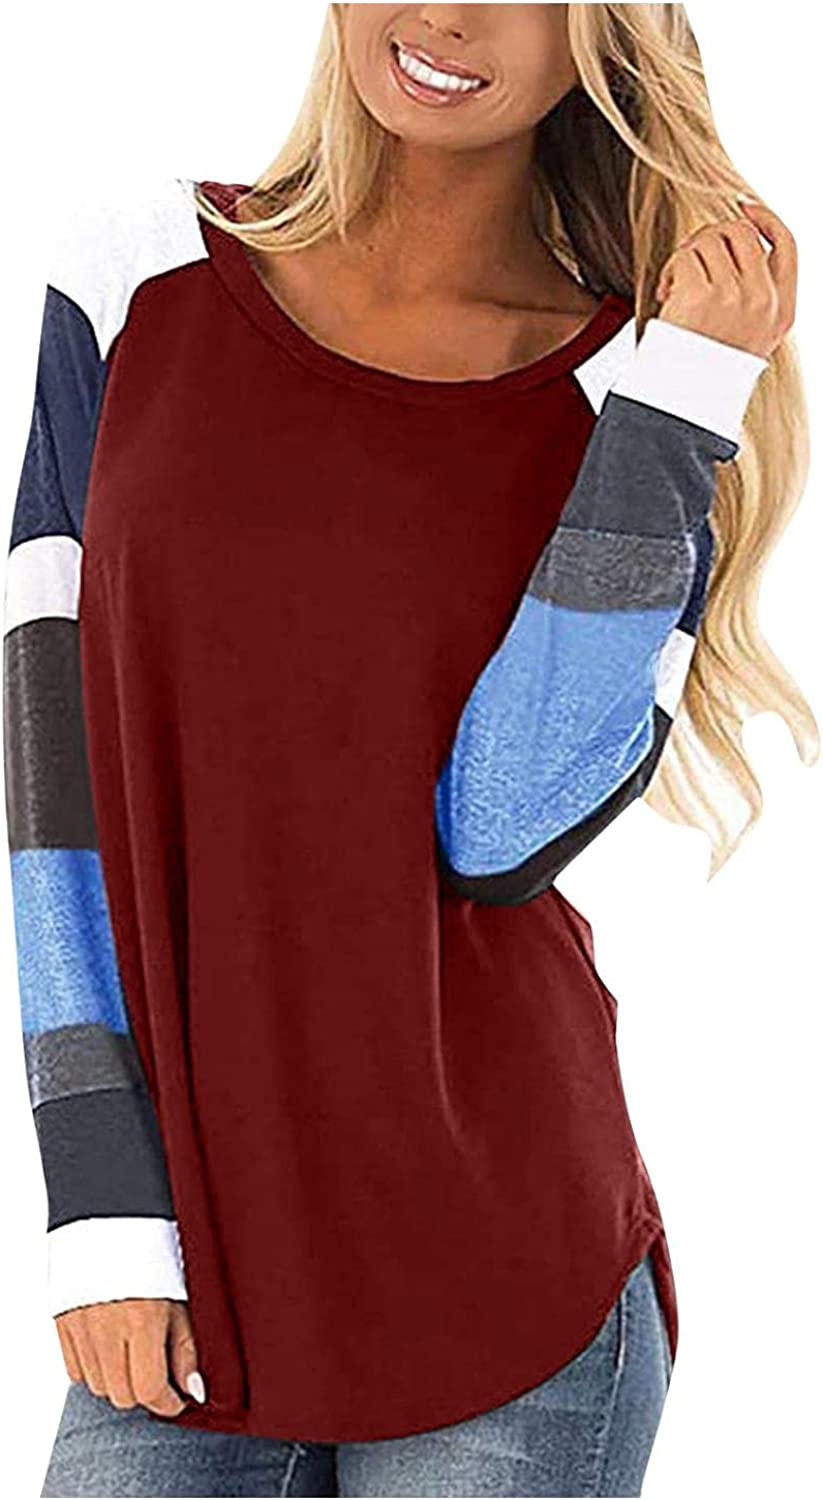 AODONG Tops for Women Long Sleeve, Women's Round Neck Causal Long Sleeve Tops Loose Blouse Tops Soft Striped Tunic